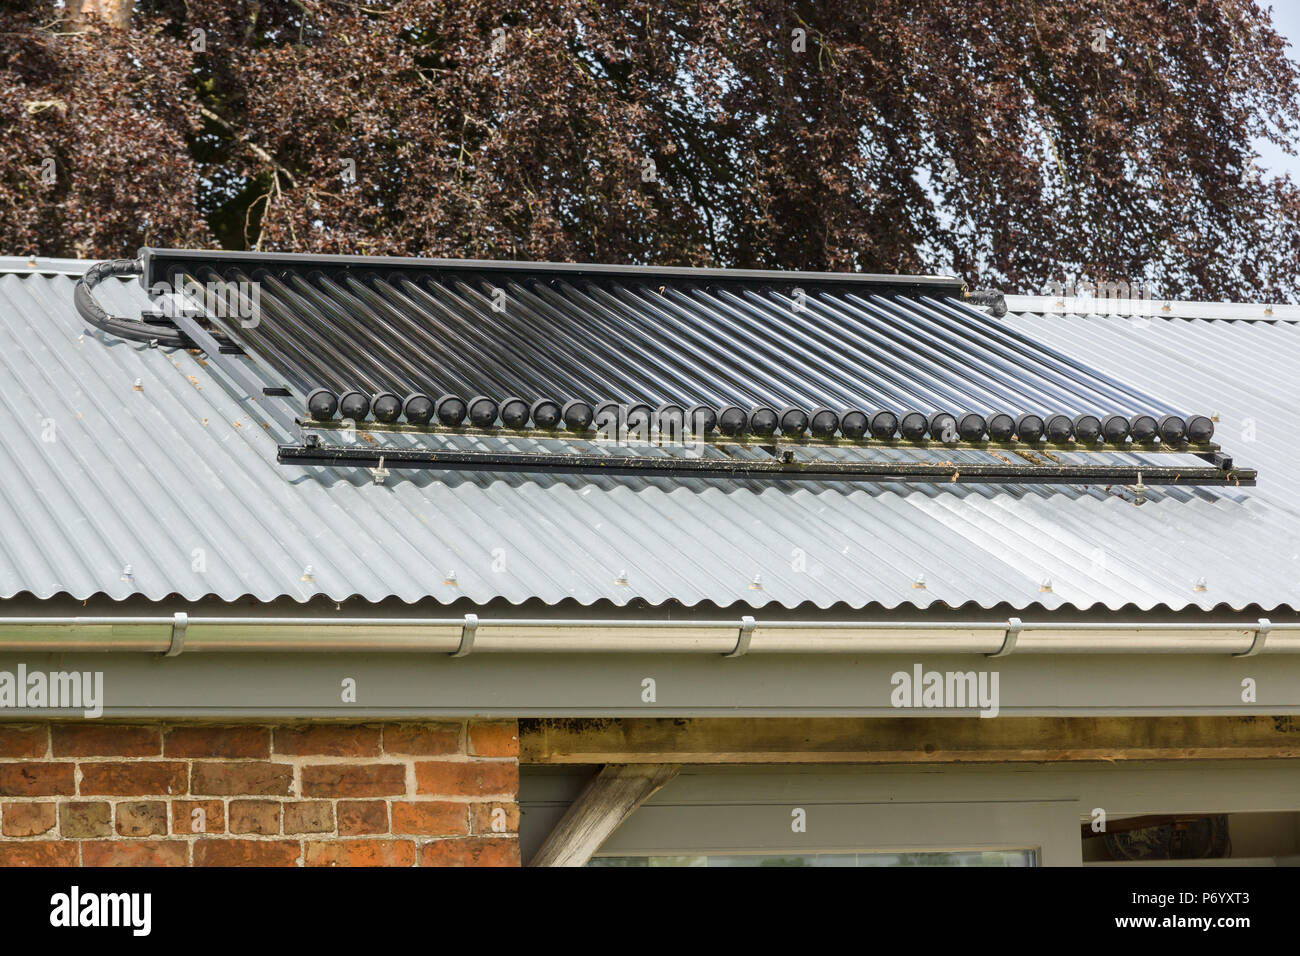 Solar heating panels or collectors on a building roof used to provide energy efficient domestic hot water - Stock Image